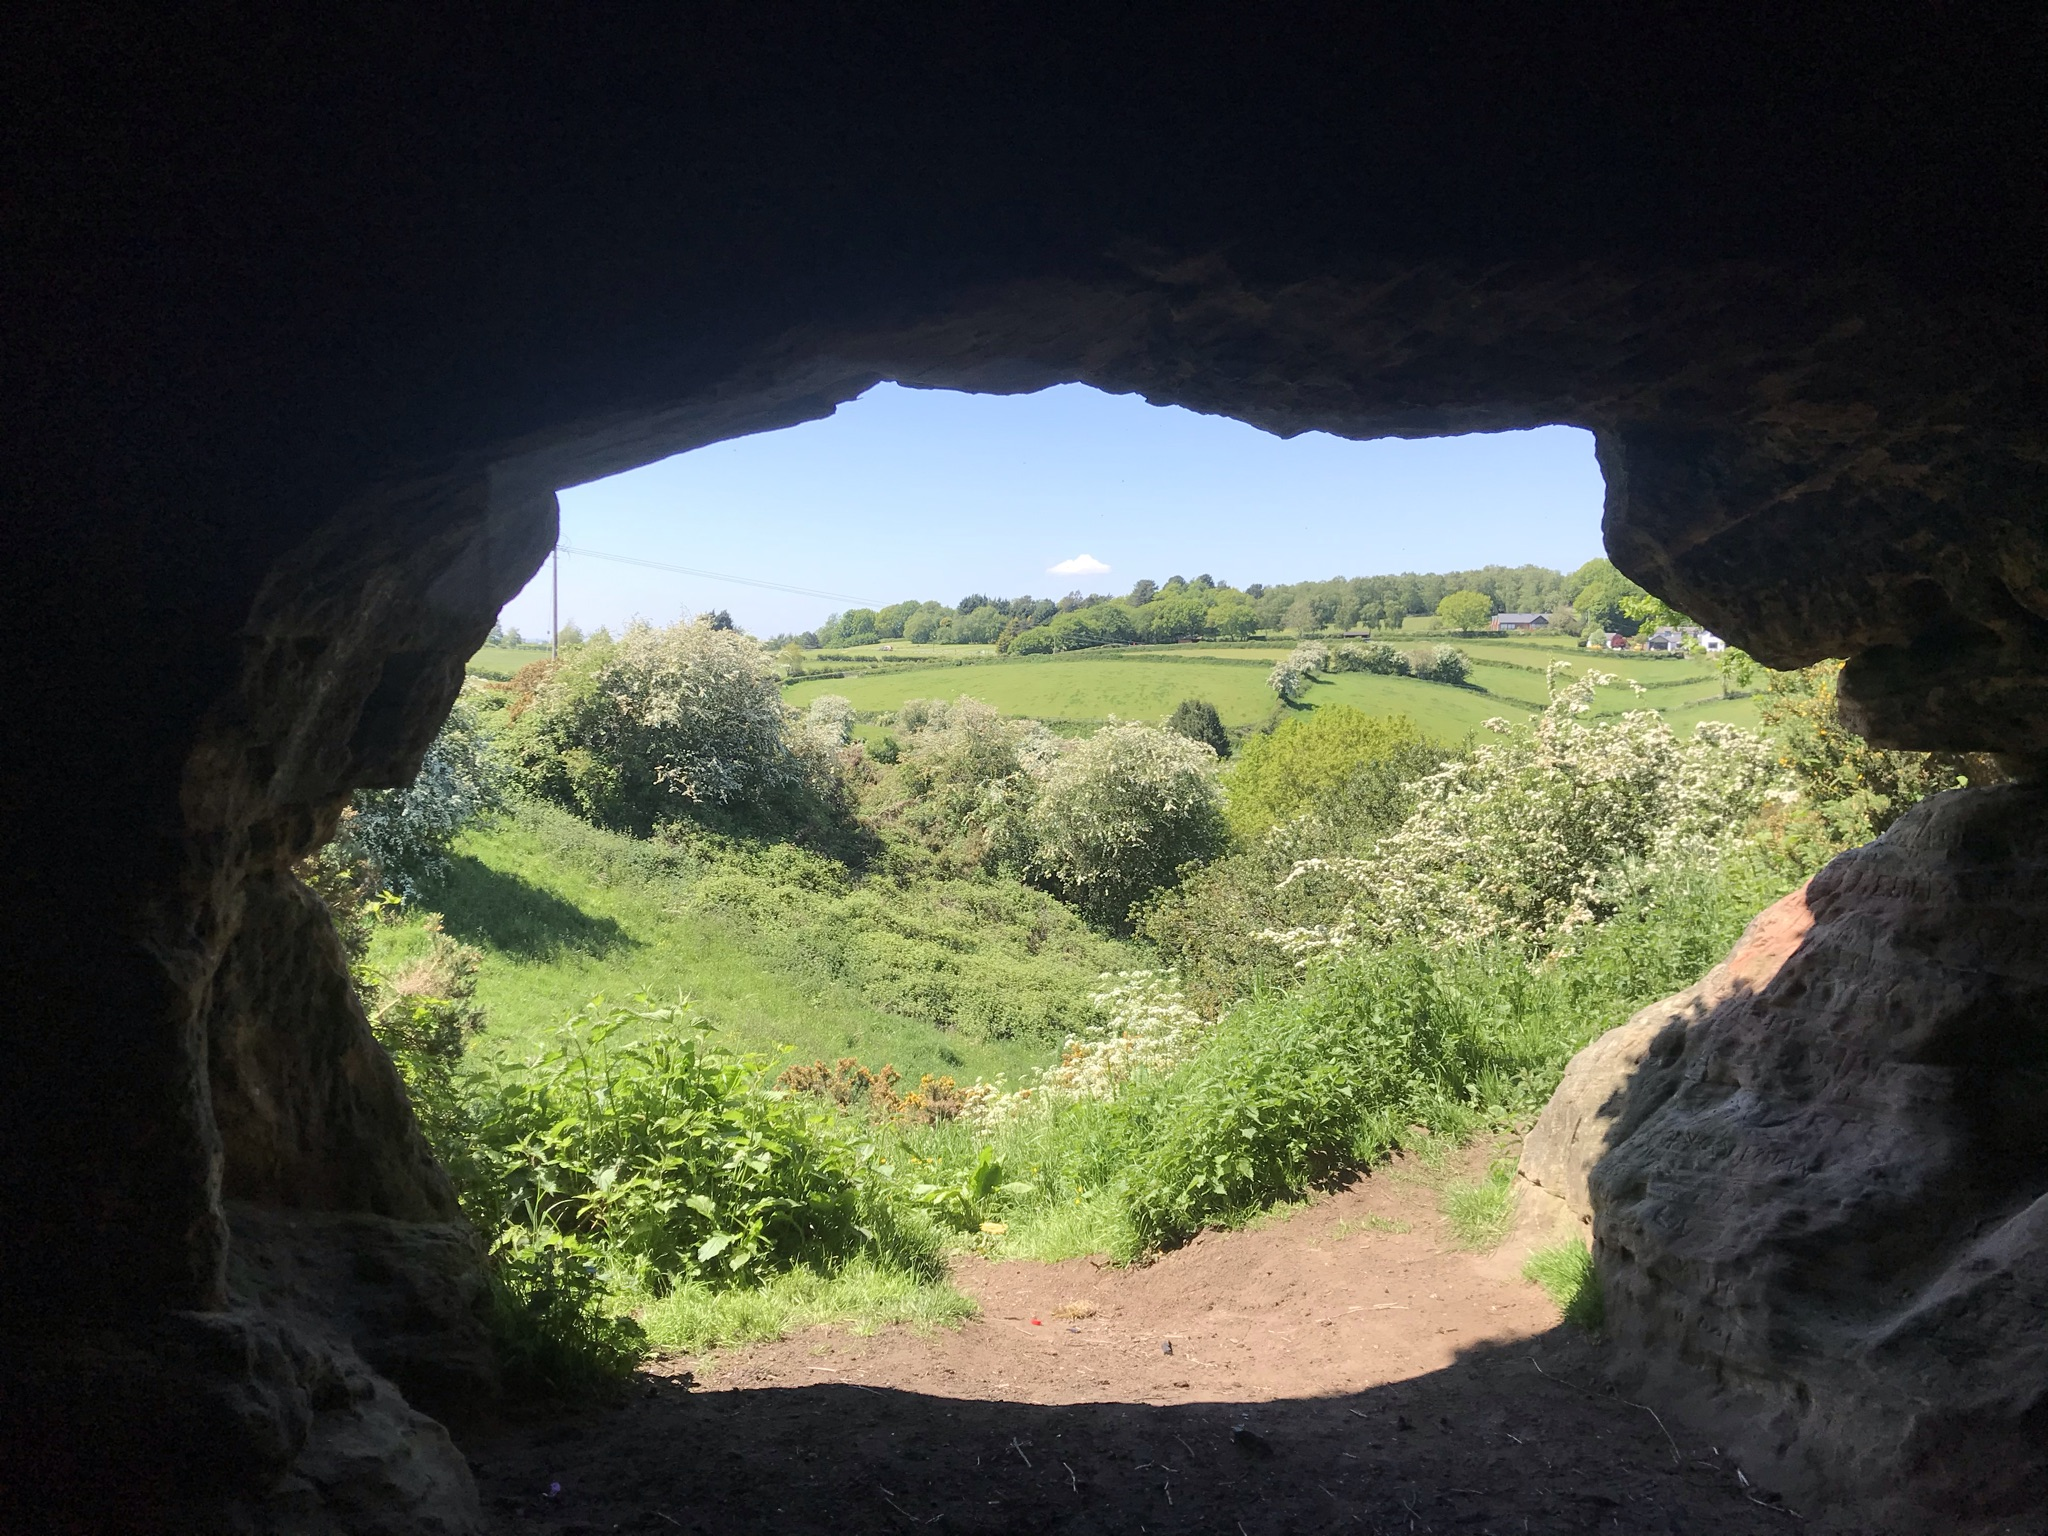 Rolling fields and Hawthorn bushes covered in white flowers frames by the entrance to a cave